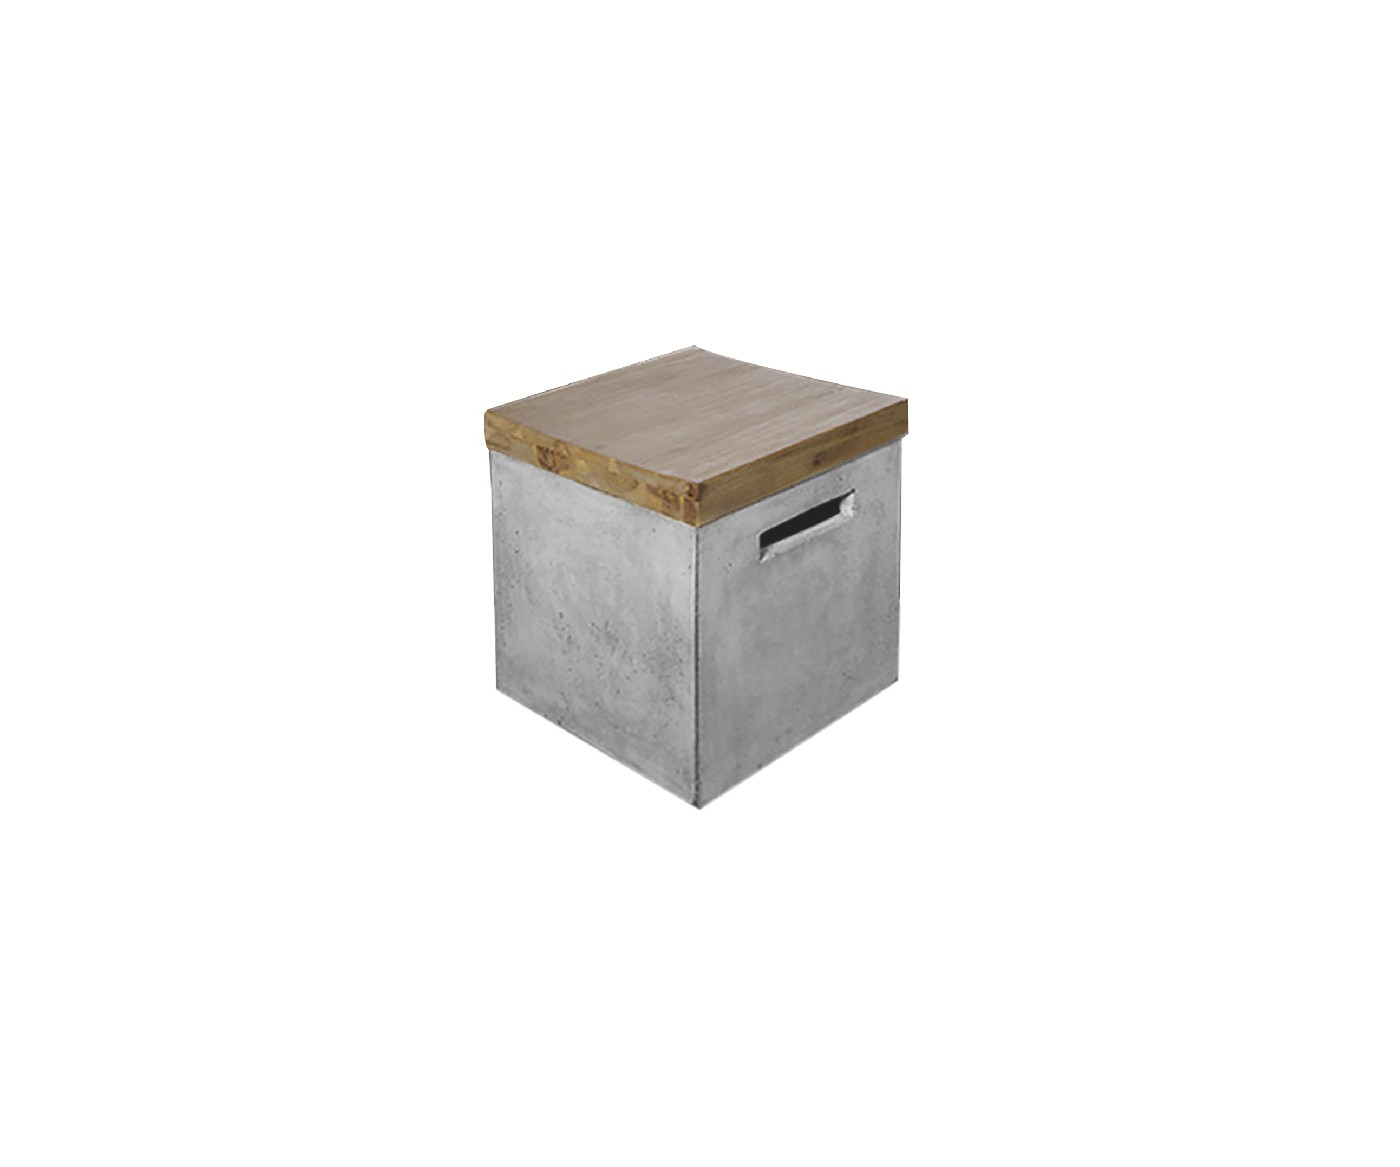 bar chairs concrete personalized folding stool from with wooden seat candlelight